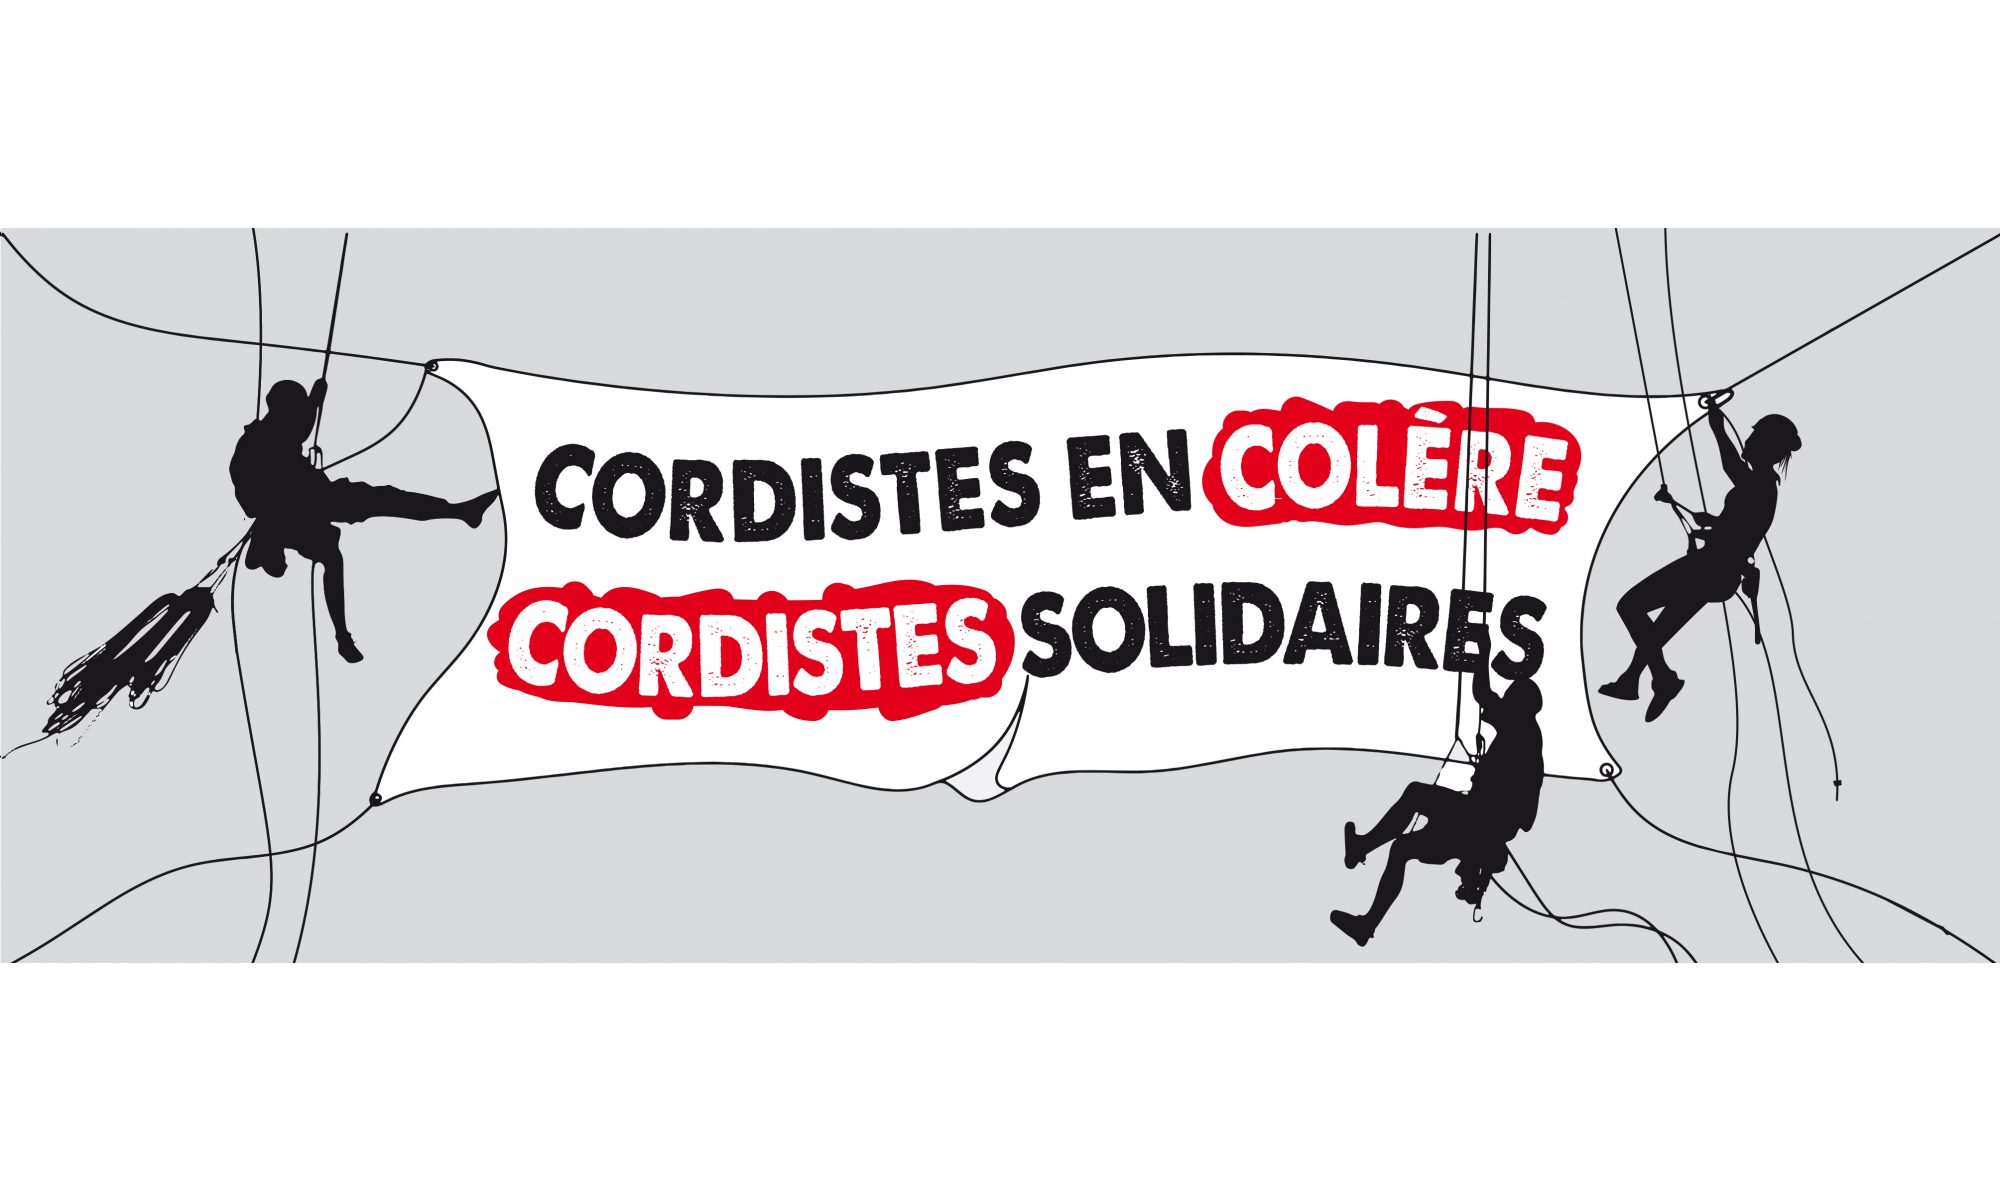 Association d'autodéfense de cordistes